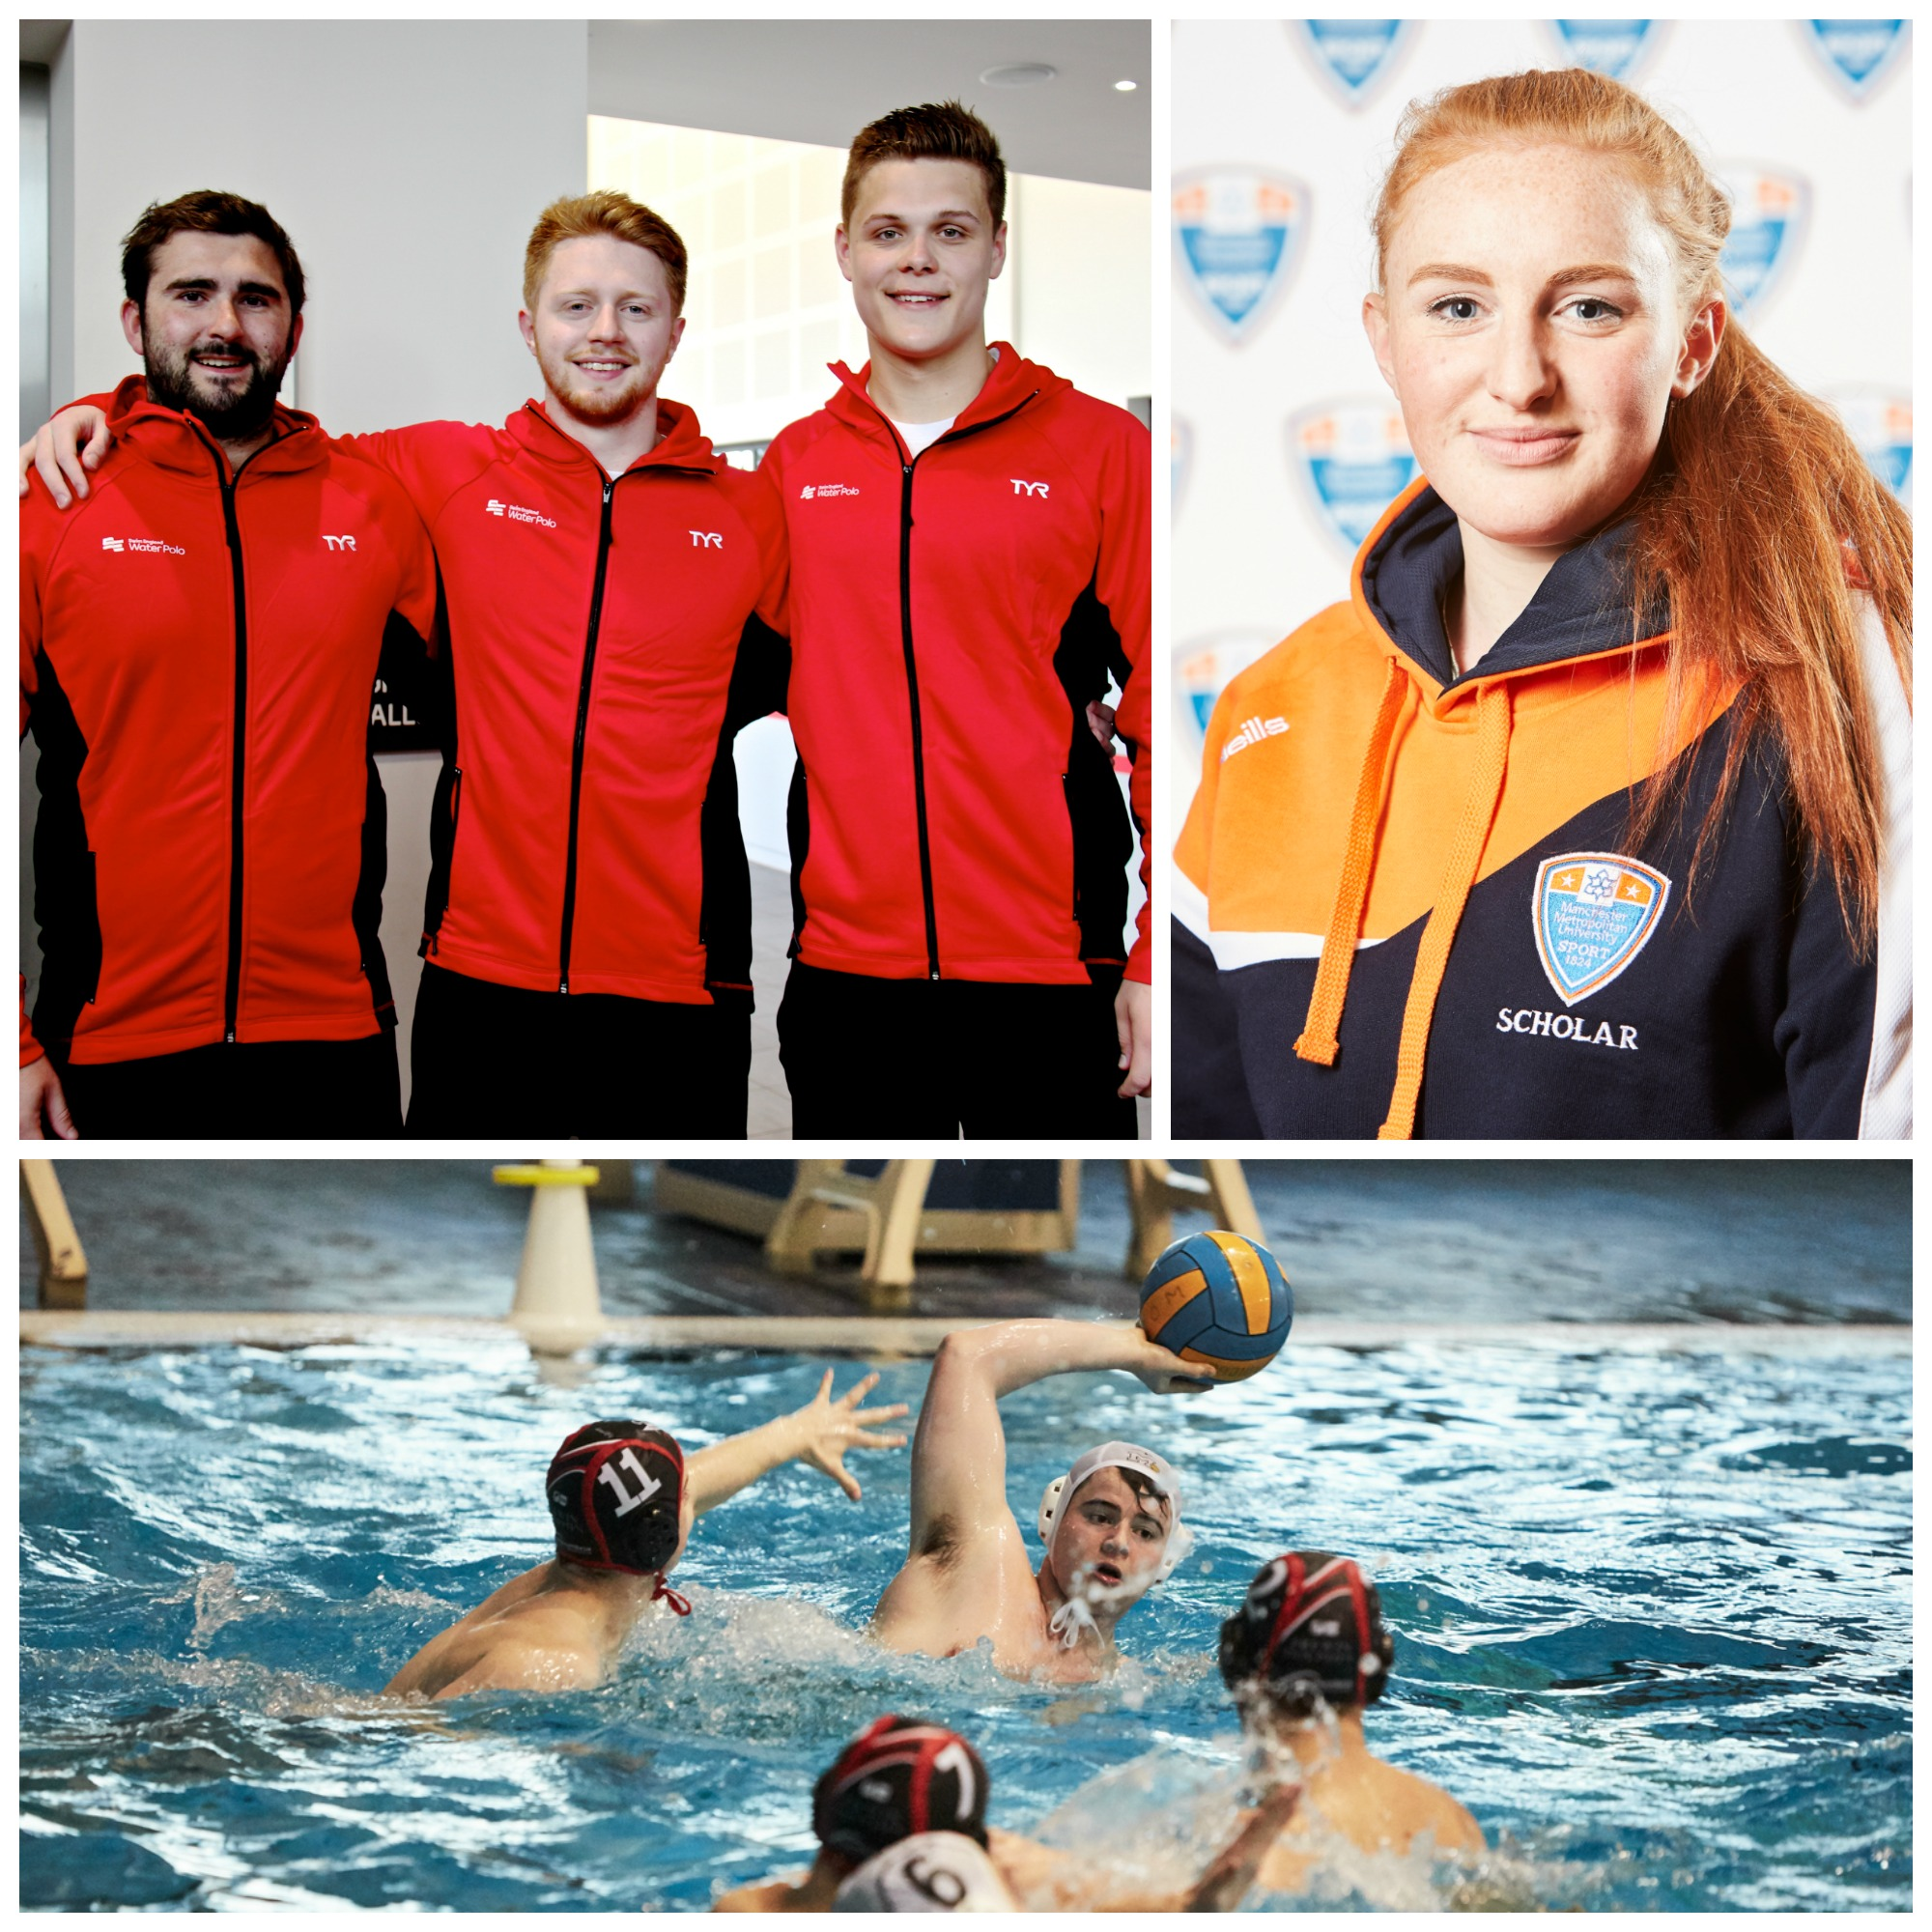 79d5de95c2856 Student athletes selected for World University Games · Manchester ...